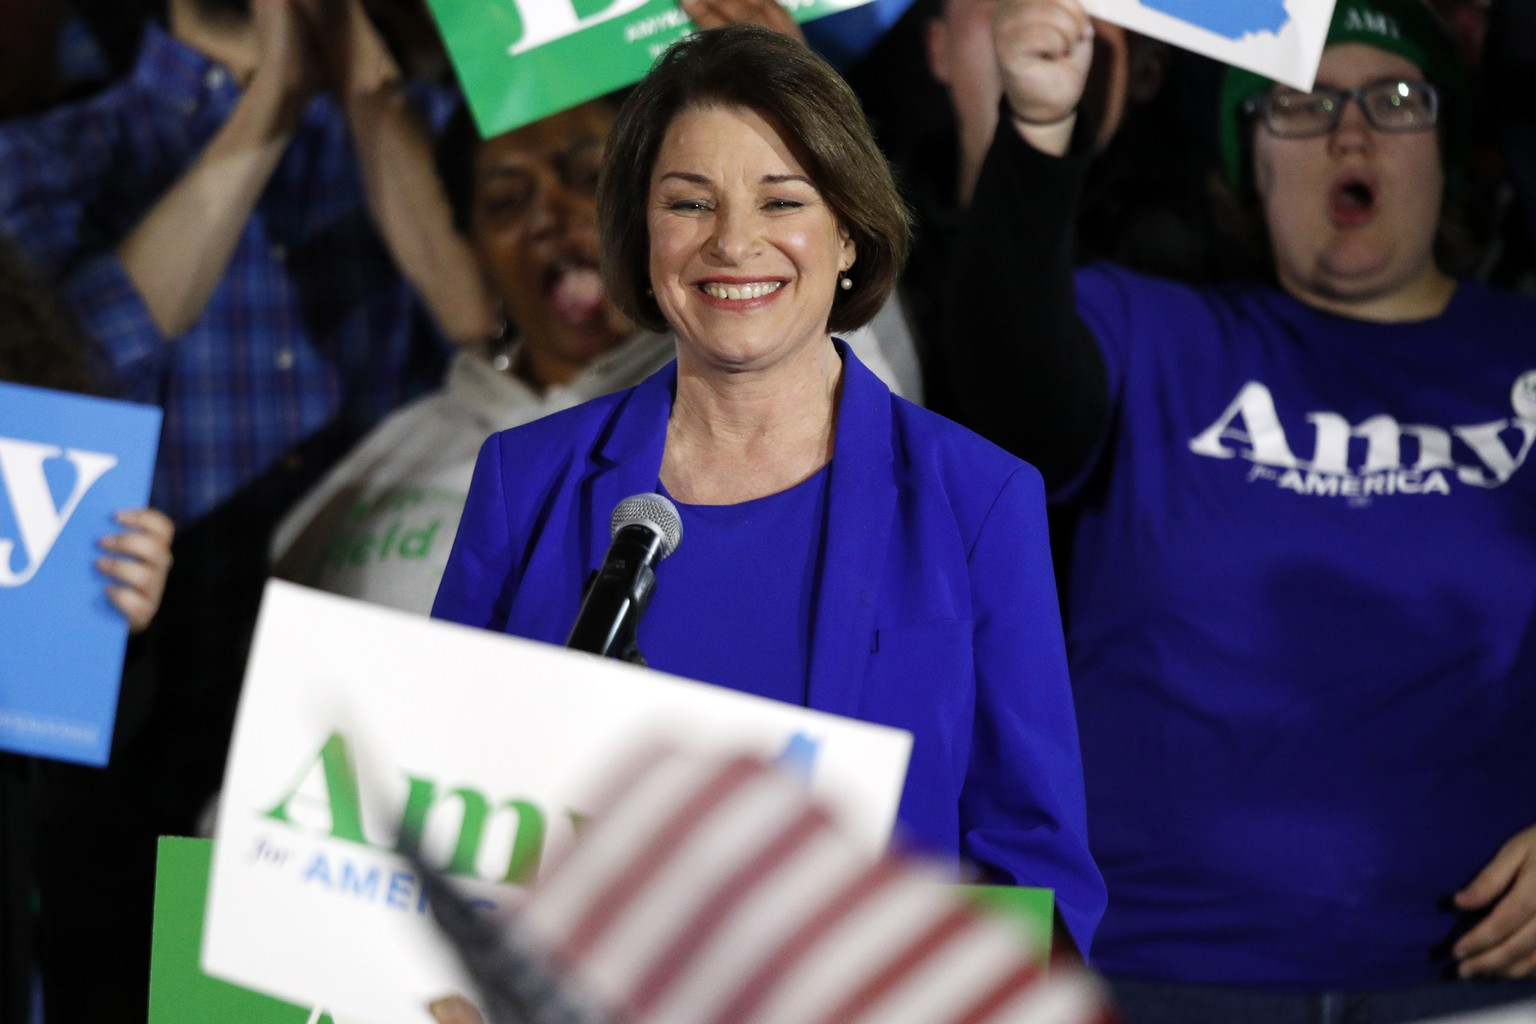 Democratic presidential candidate Sen. Amy Klobuchar, D-Minn., speaks at her election night party, Tuesday, Feb. 11, 2020, in Concord, N.H. (AP Photo/Robert F. Bukaty) Amy Klobuchar